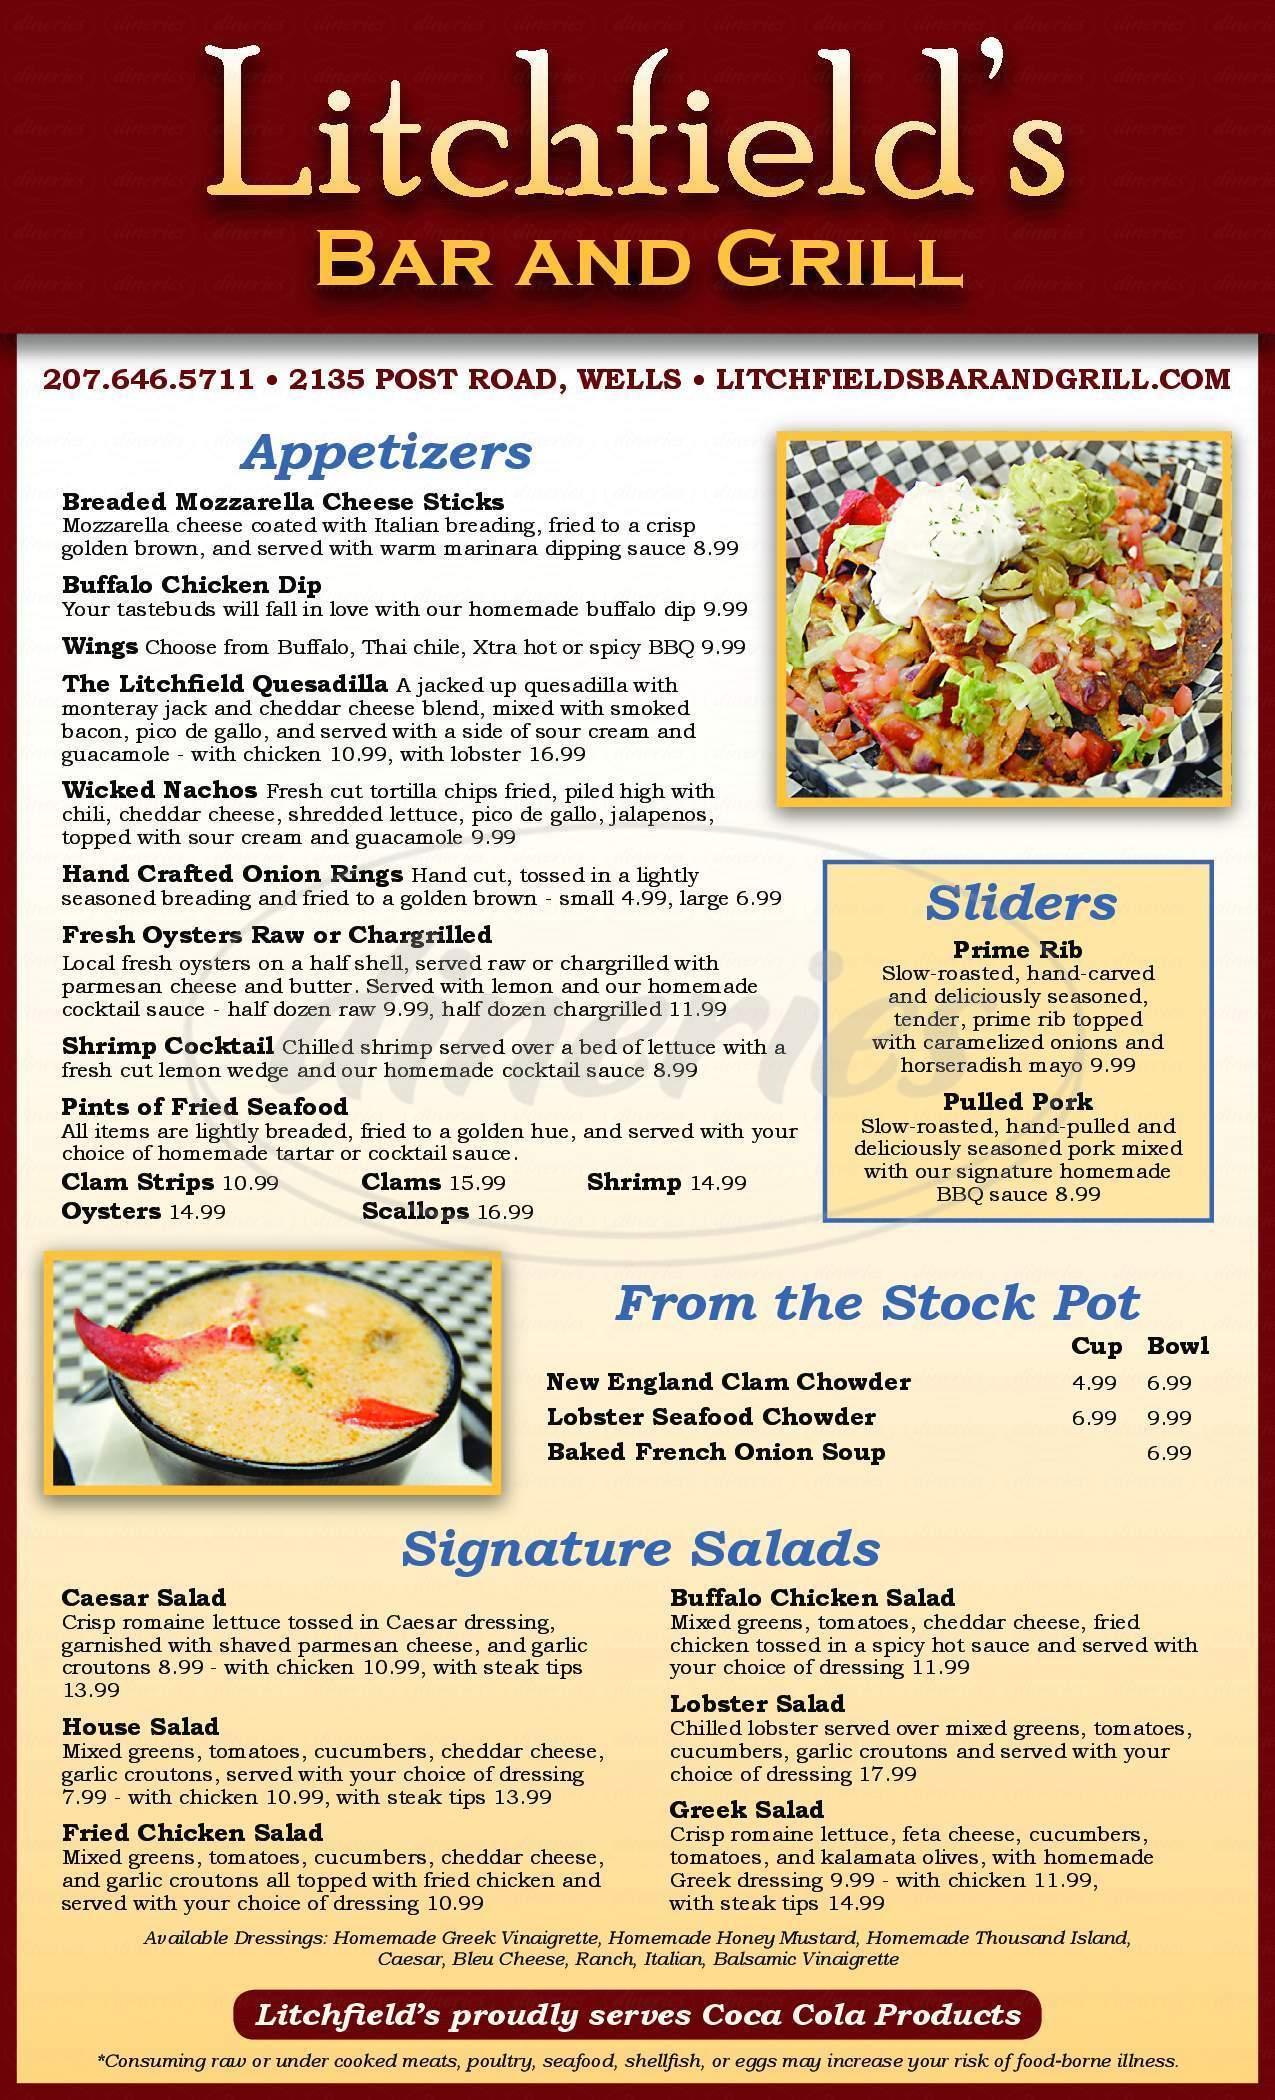 menu for Litchfield's Bar and Grill